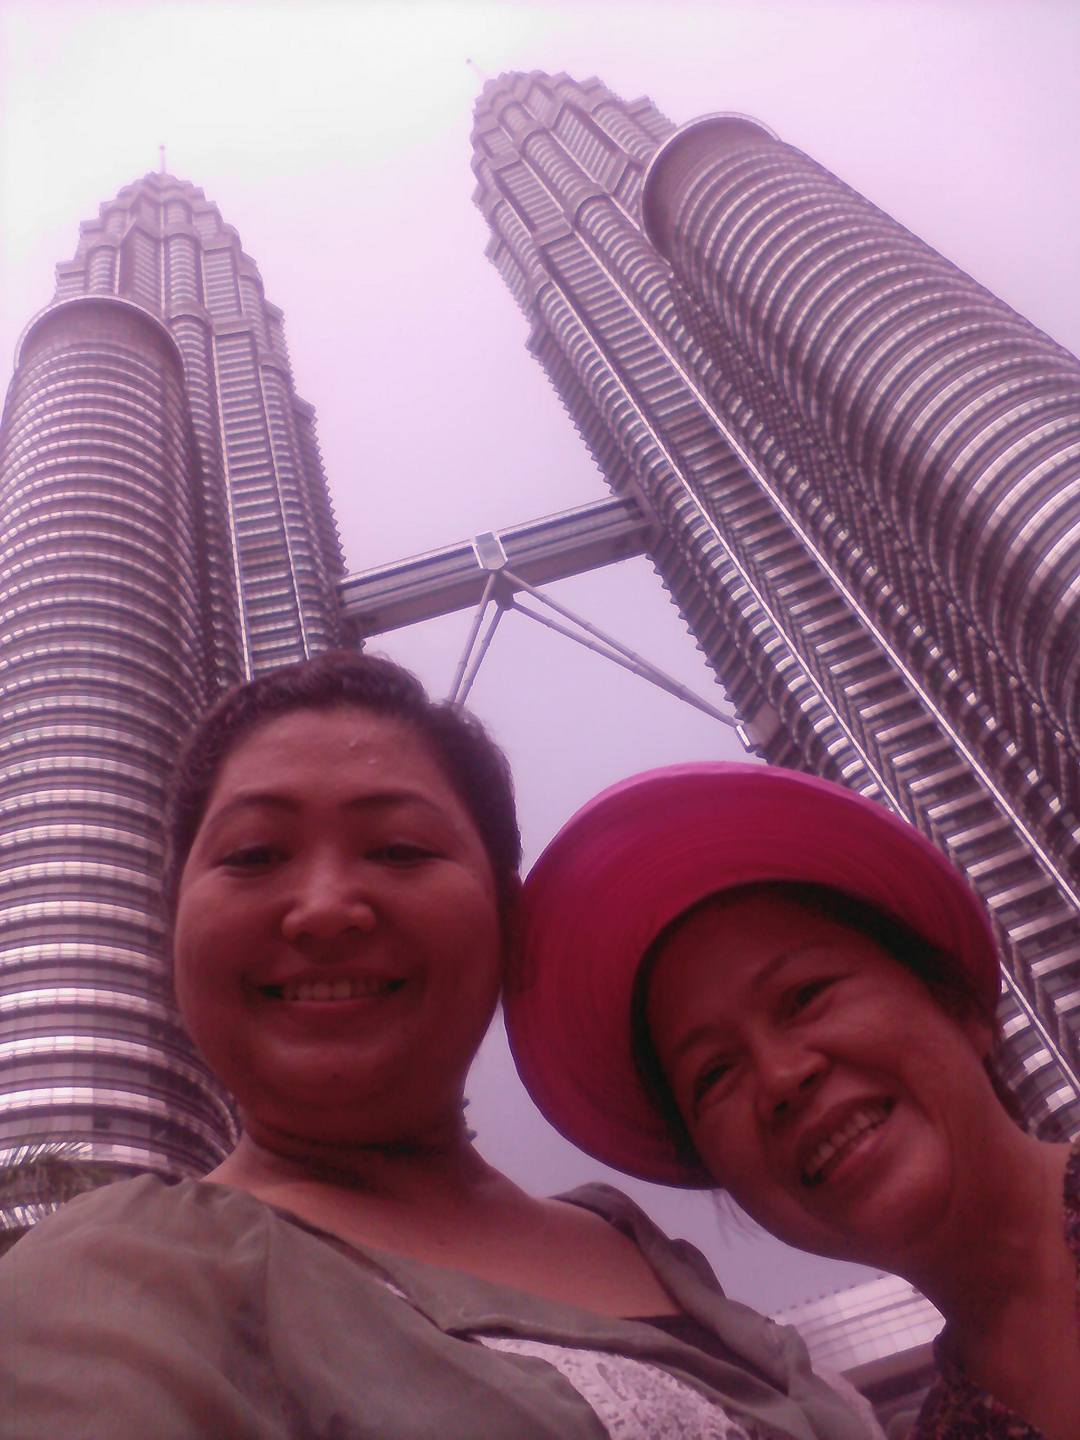 Revisiting Twin Tower with my Filipina friend, Rizza